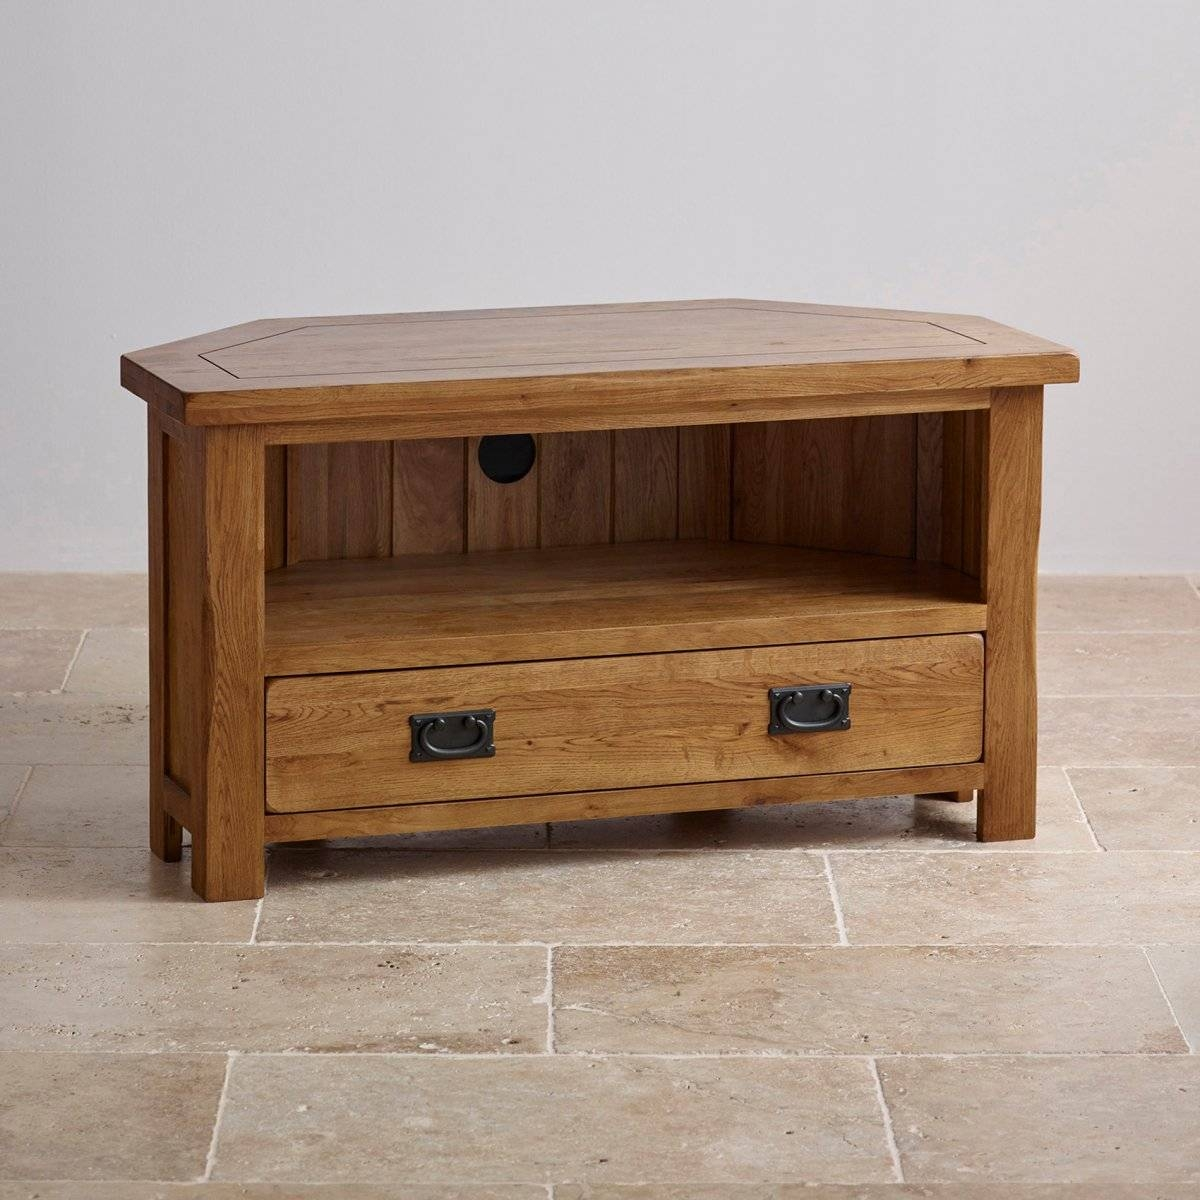 Original Rustic Corner Tv Cabinet In Solid Oak in Corner Wooden Tv Cabinets (Image 10 of 15)